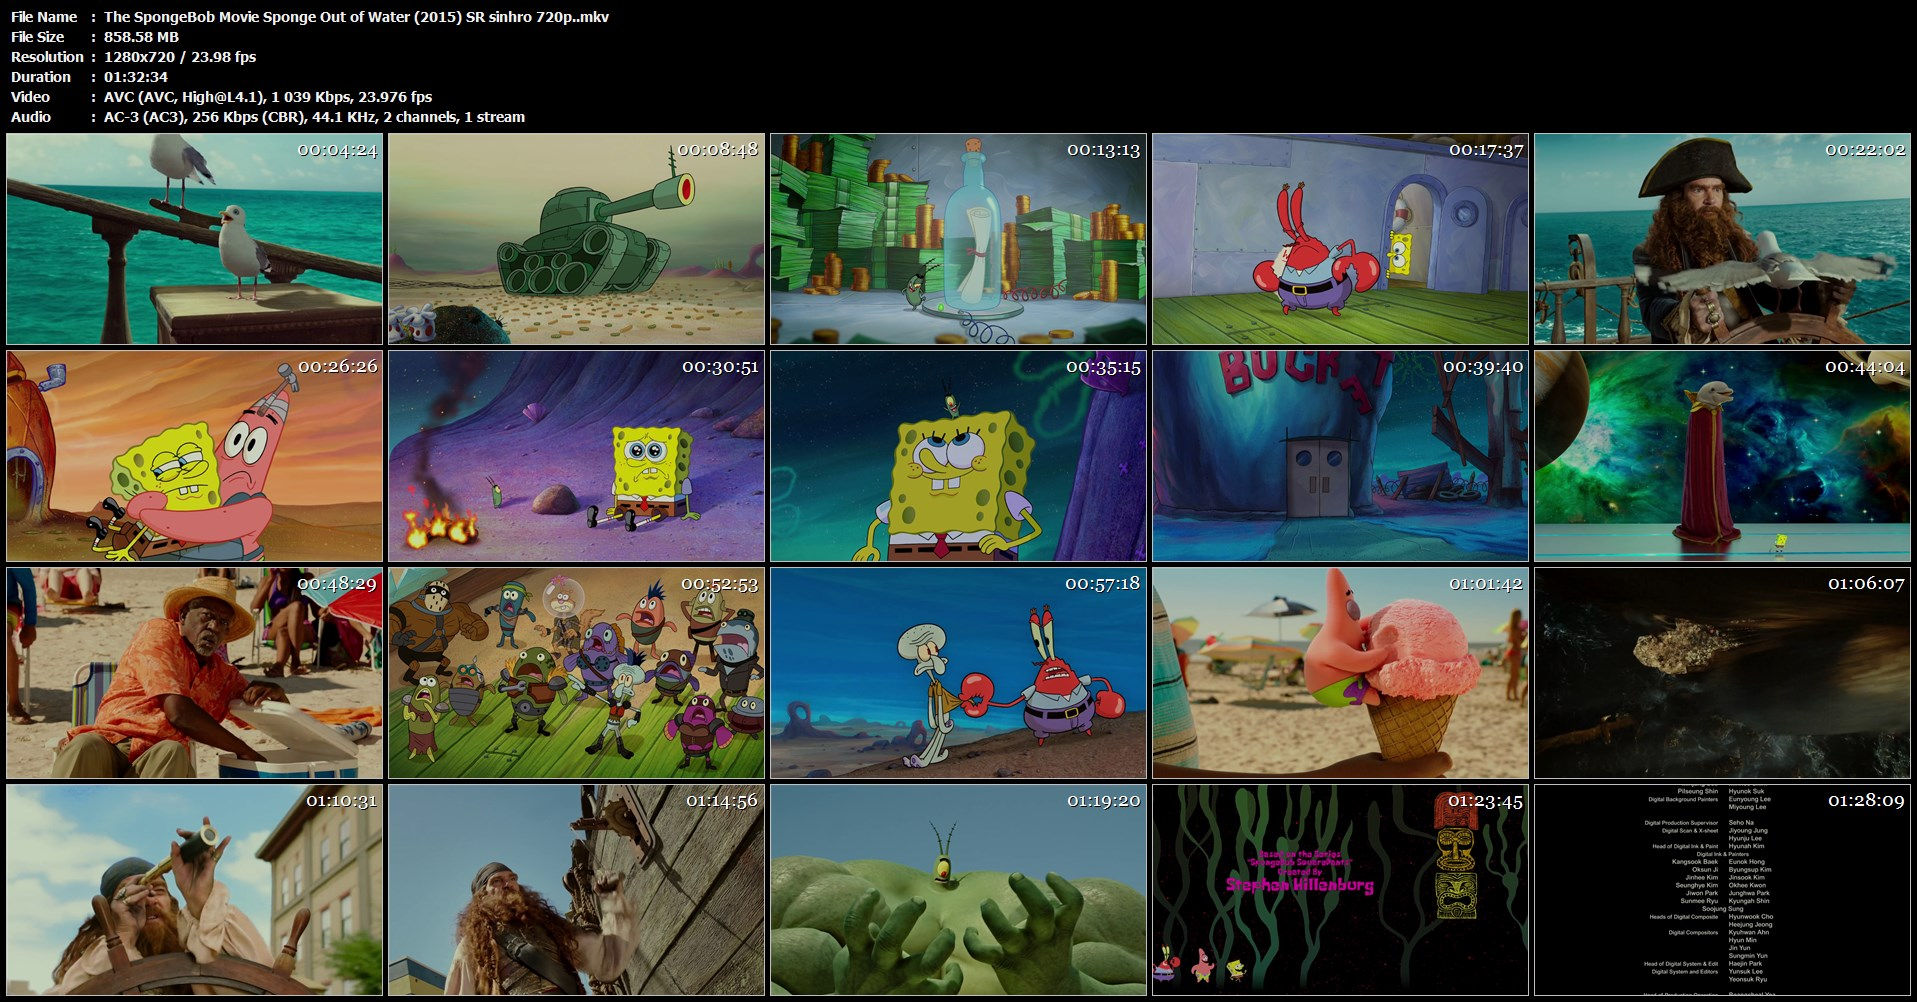 The_SpongeBob_Movie_Sponge_Out_of_Water_